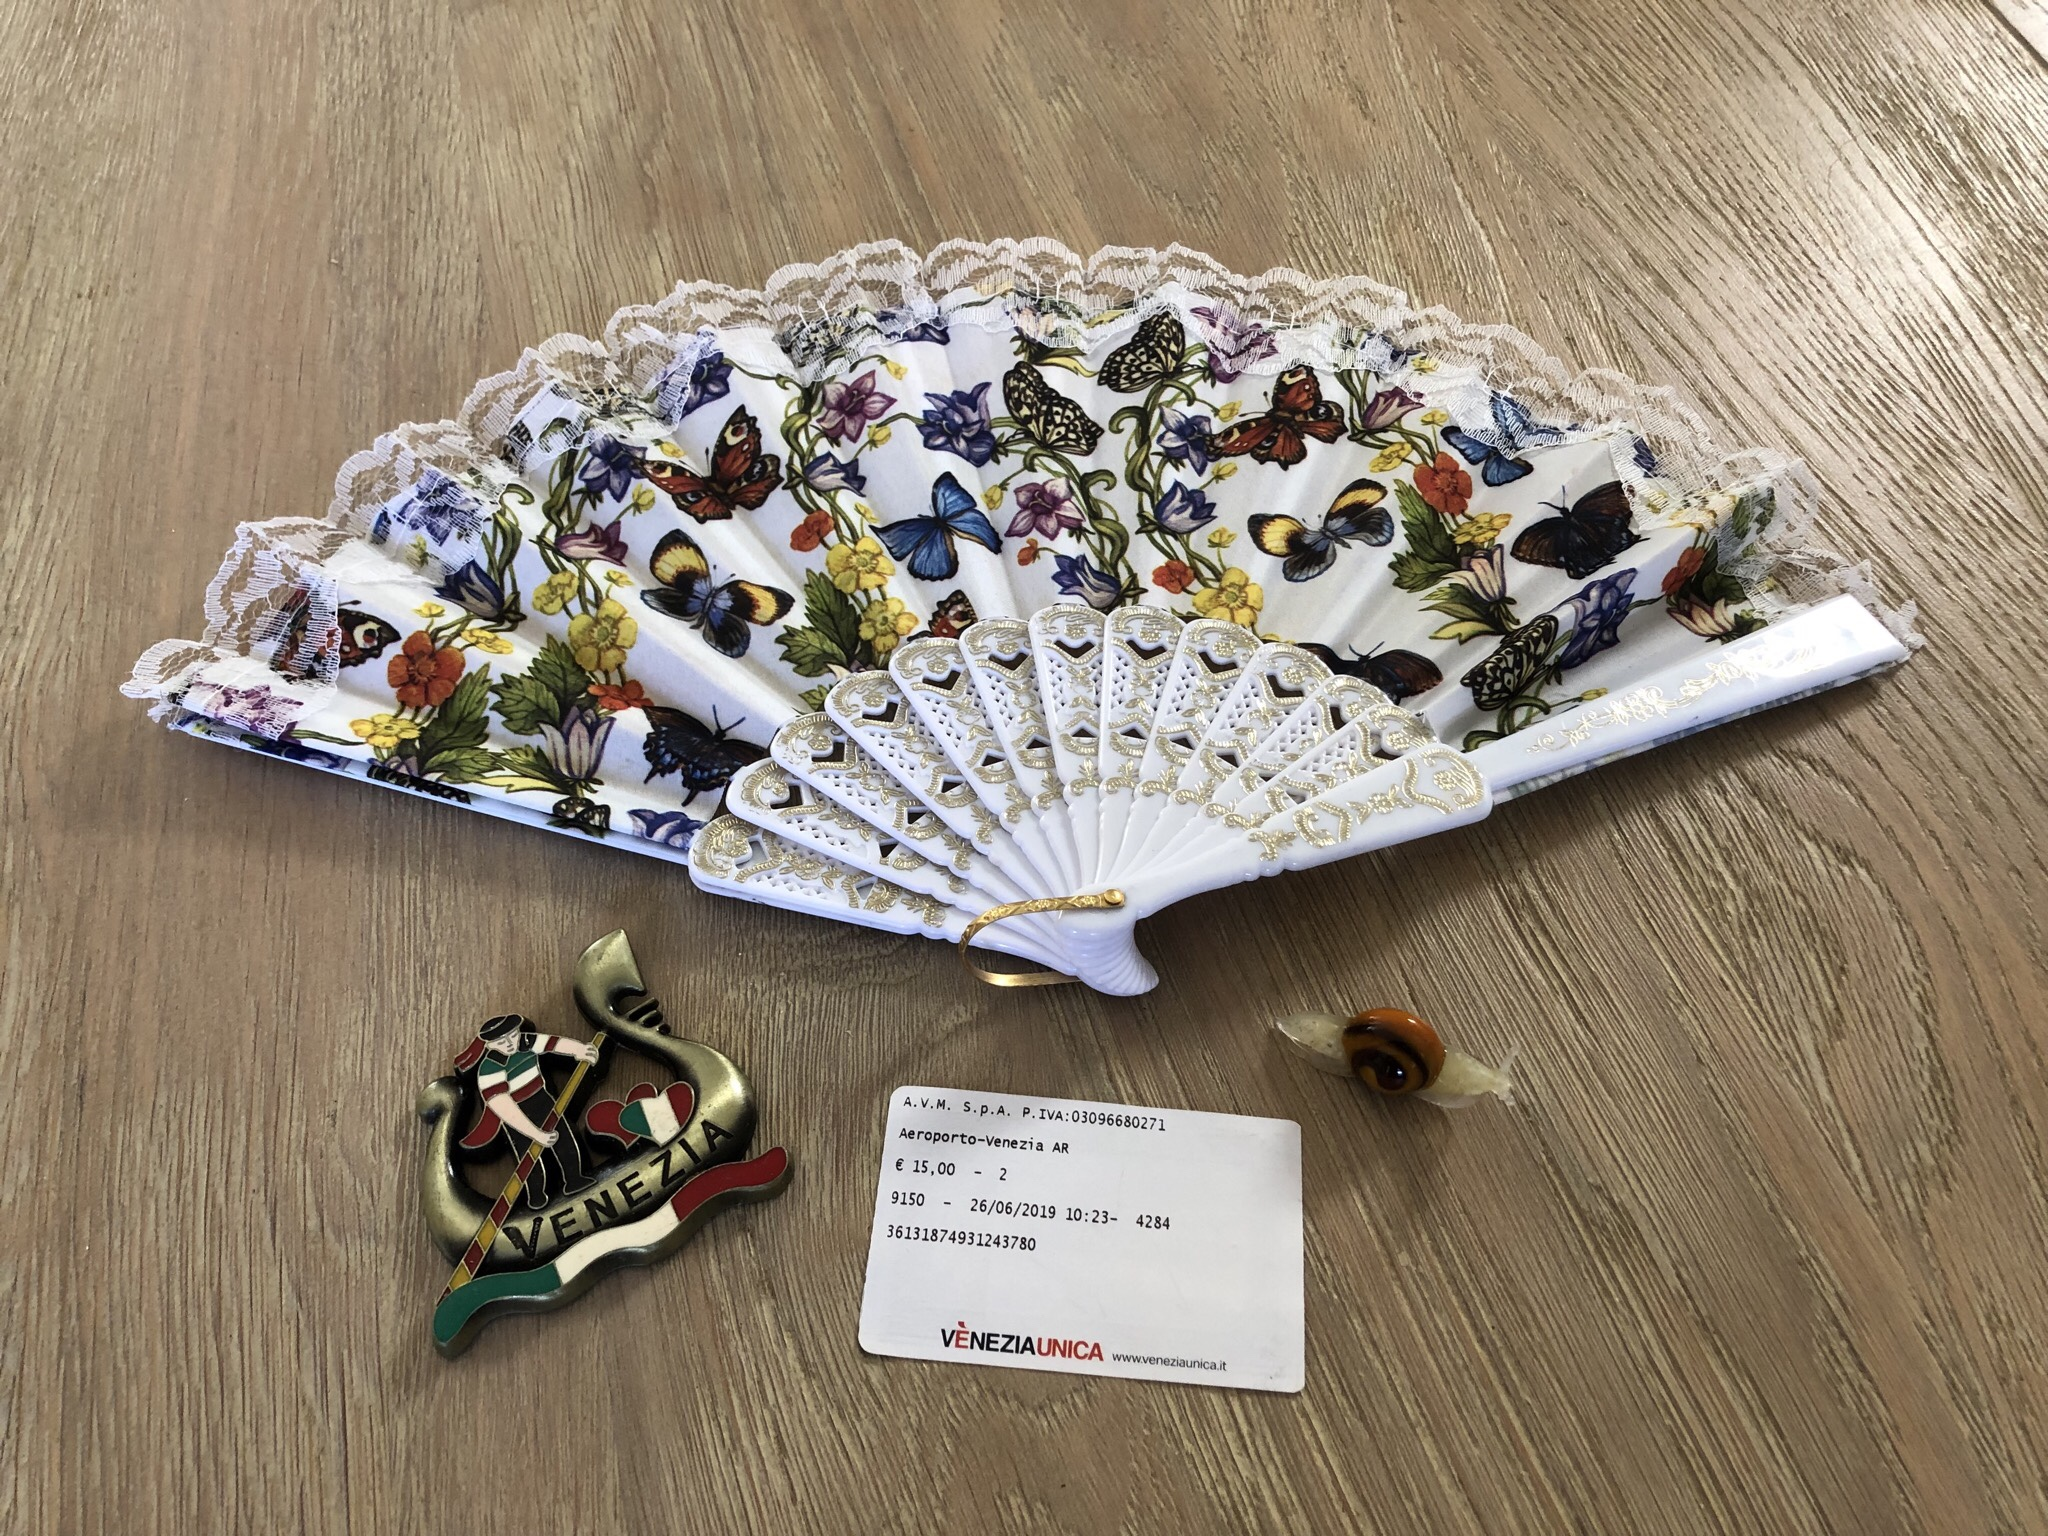 And what wonderful memories and souvenirs I have of my grand day out. The obligatory fan, the must have gondolier fridge magnet and a rather sweet Murano glass snail. I rather like the fact that snails roam wherever they choose because they take can their house with them. :)